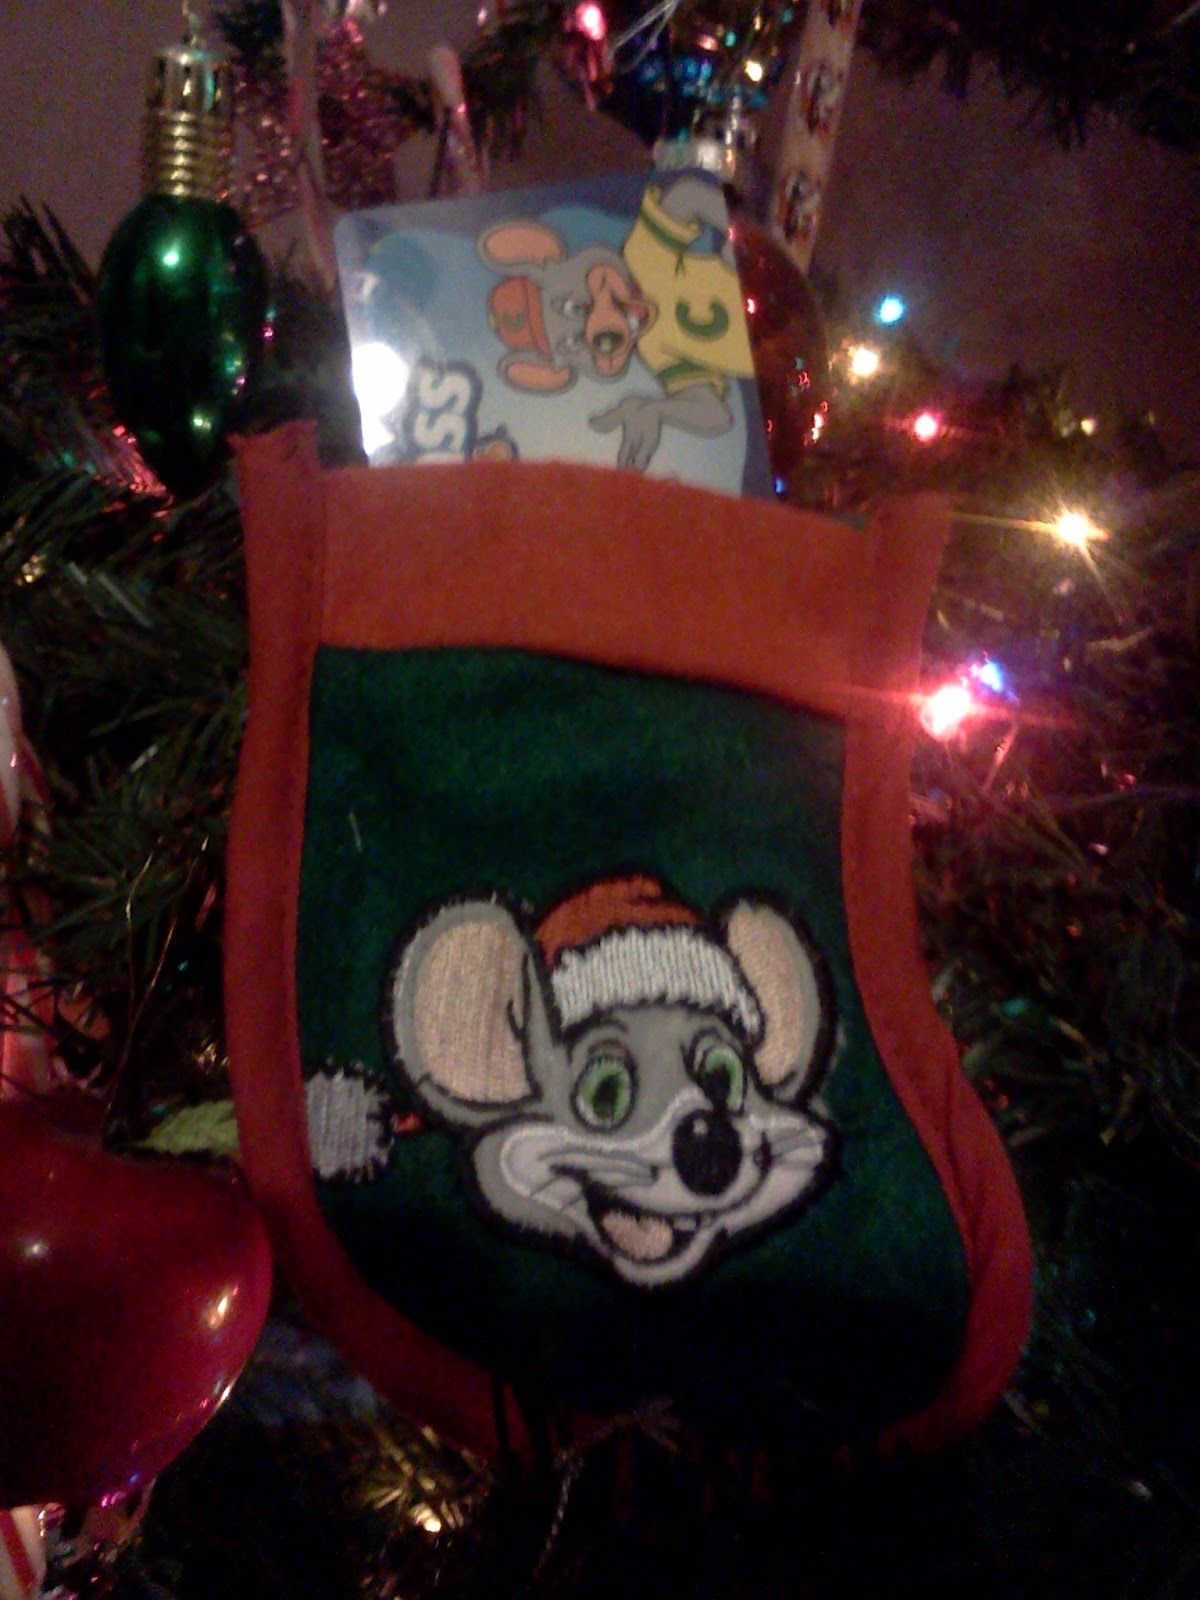 Chuck E Cheese Christmas.Giveaway Chuck E Cheese Gift Cards To 3 Winners Holiday